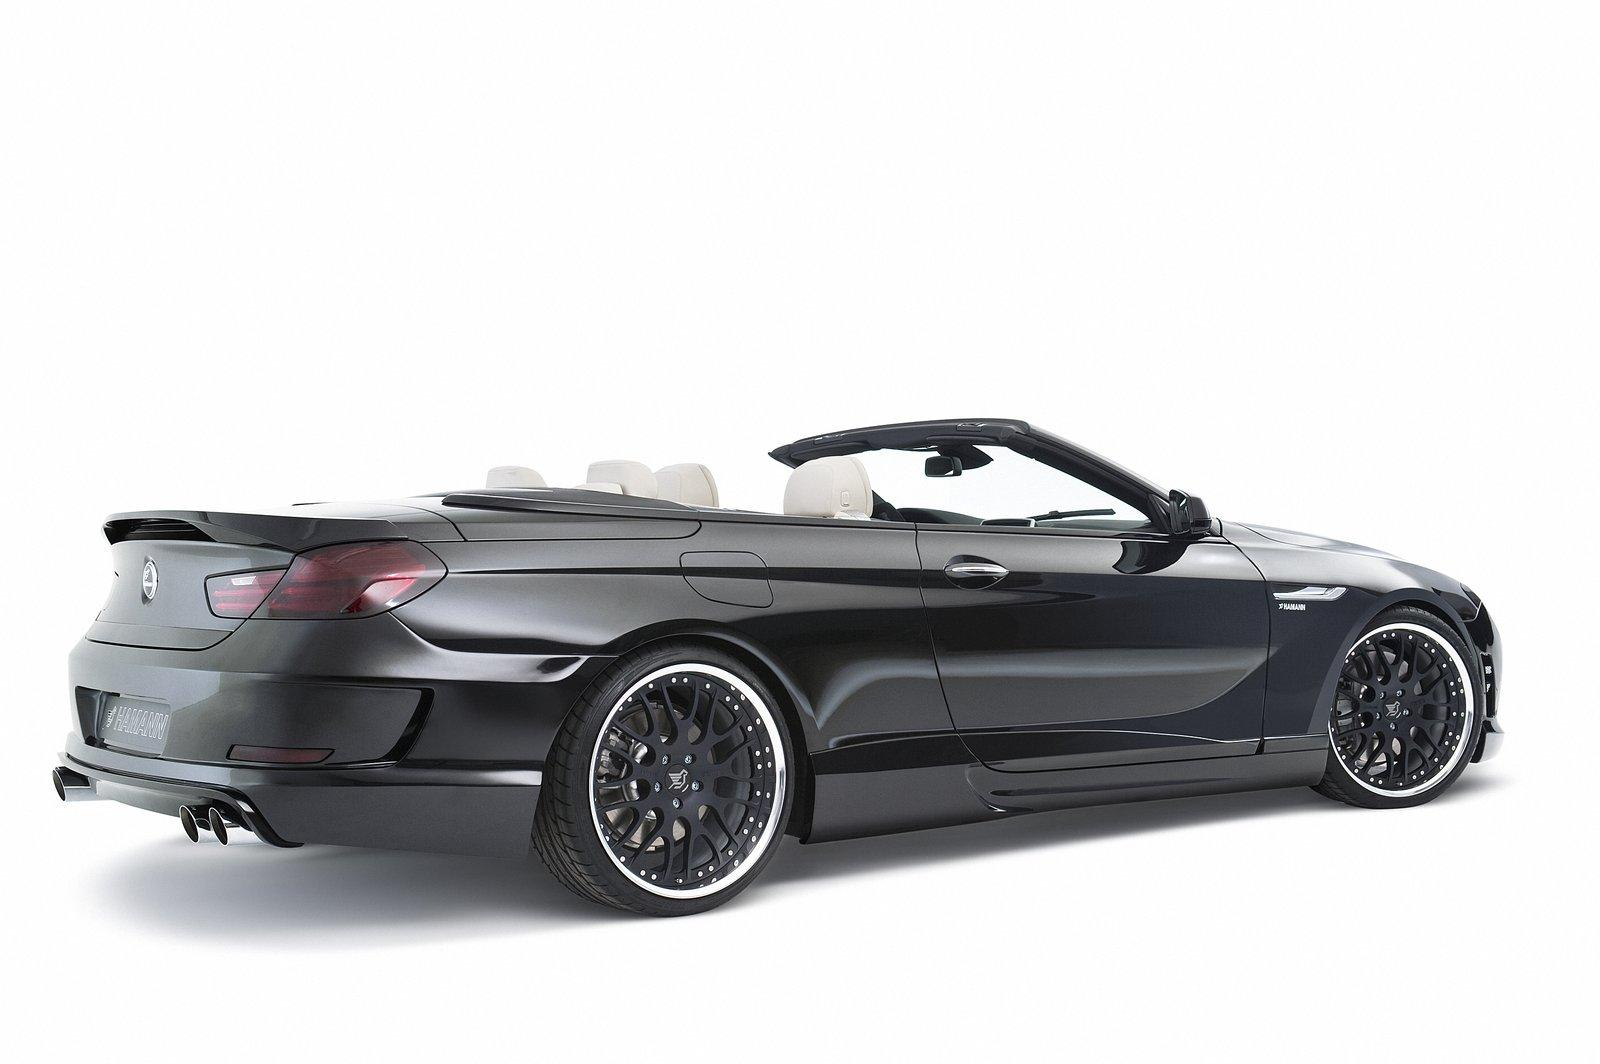 2012 BMW 650i Convertible by Hamann